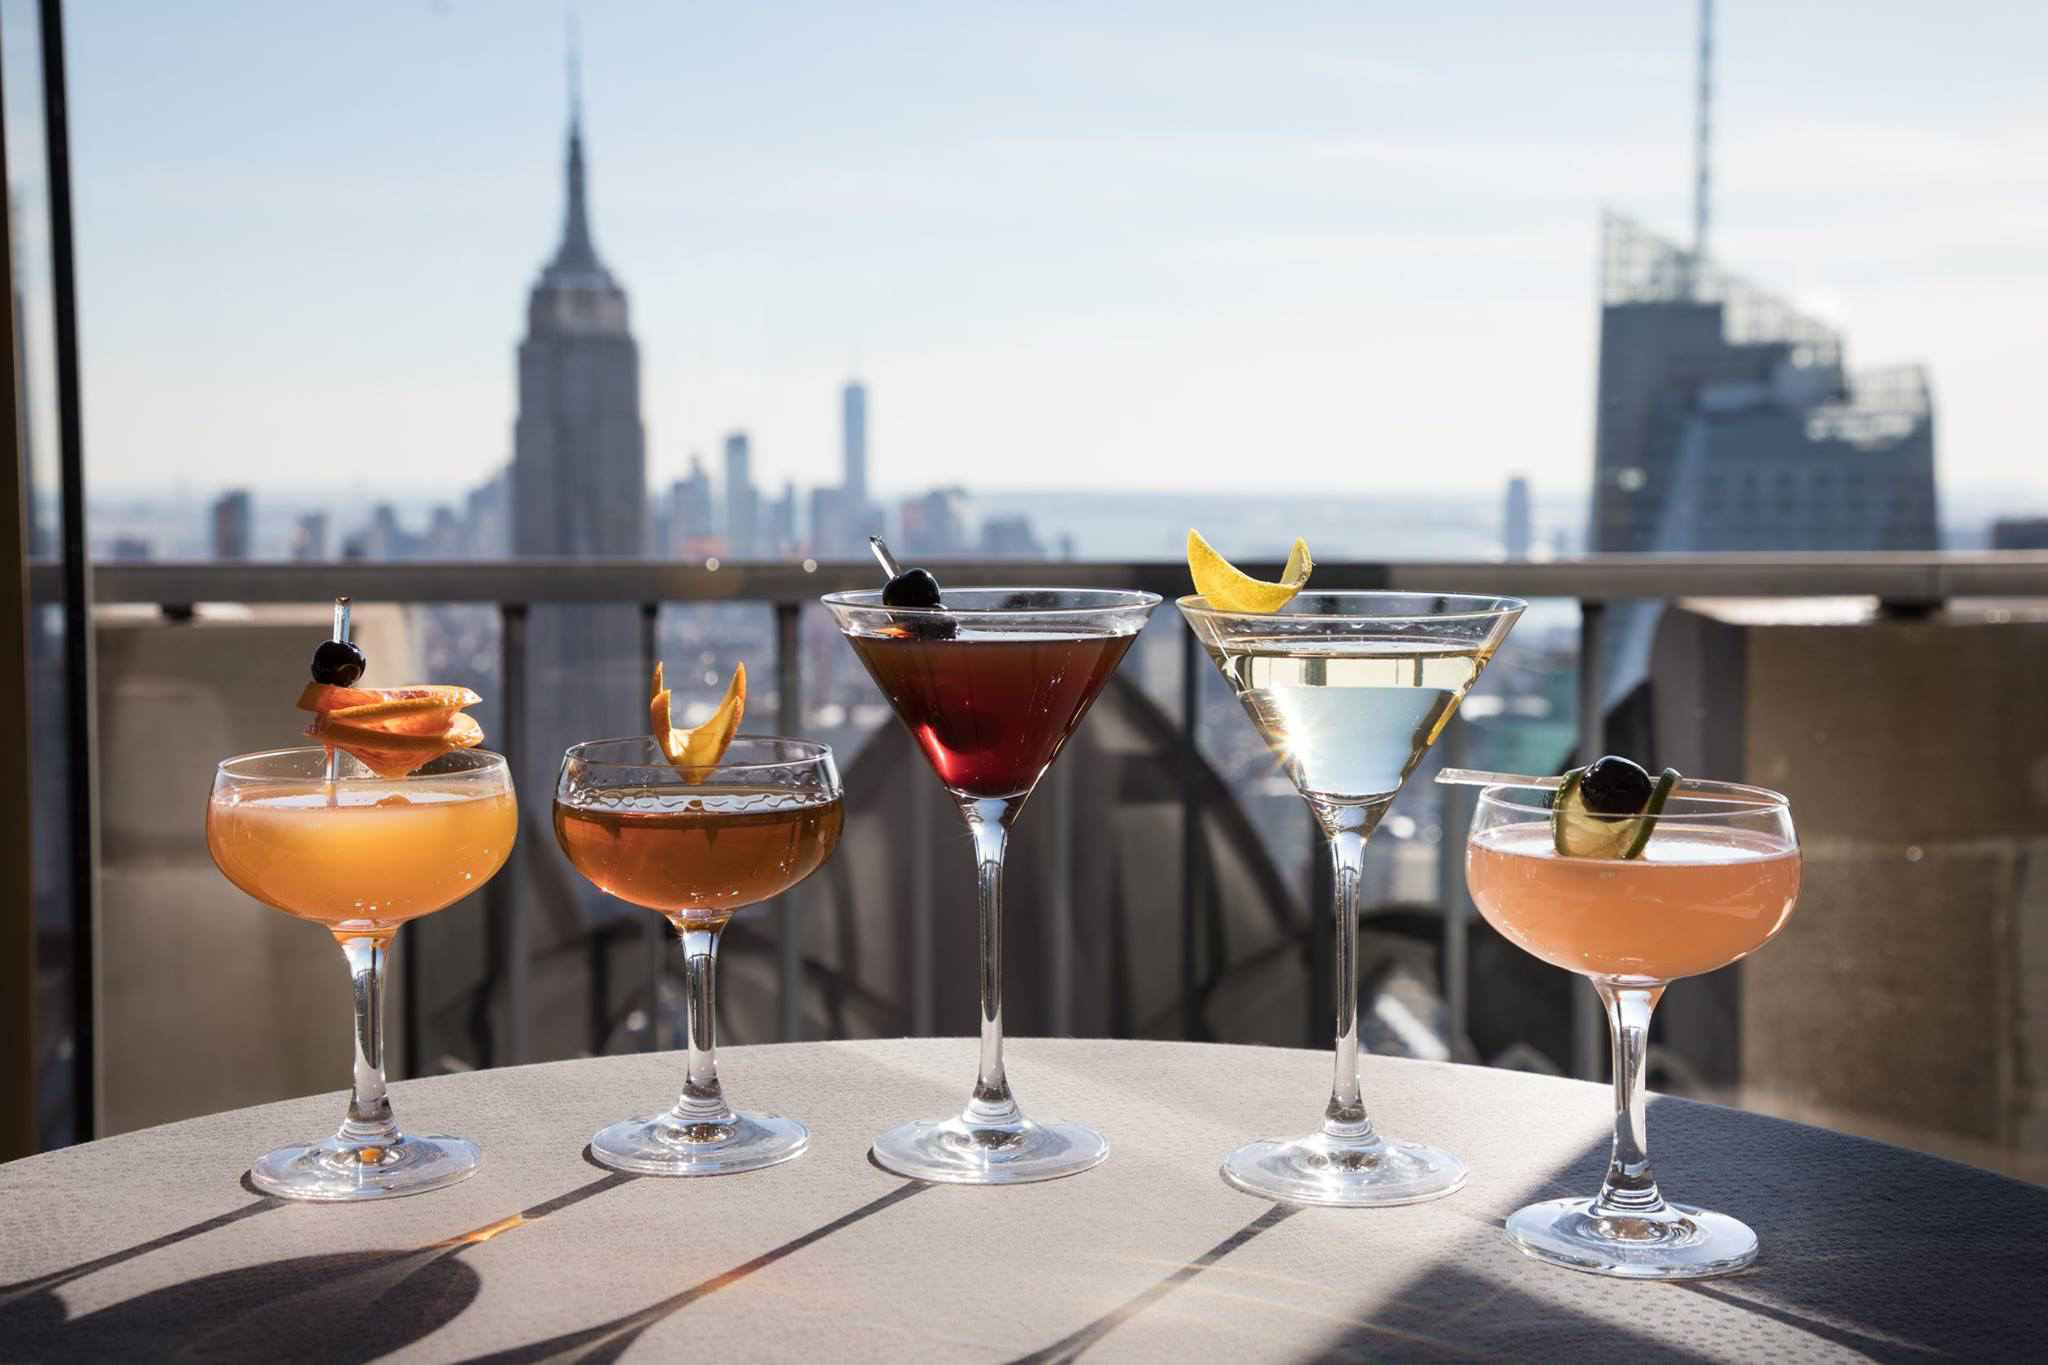 Drinks and a view at Bar SixtyFive